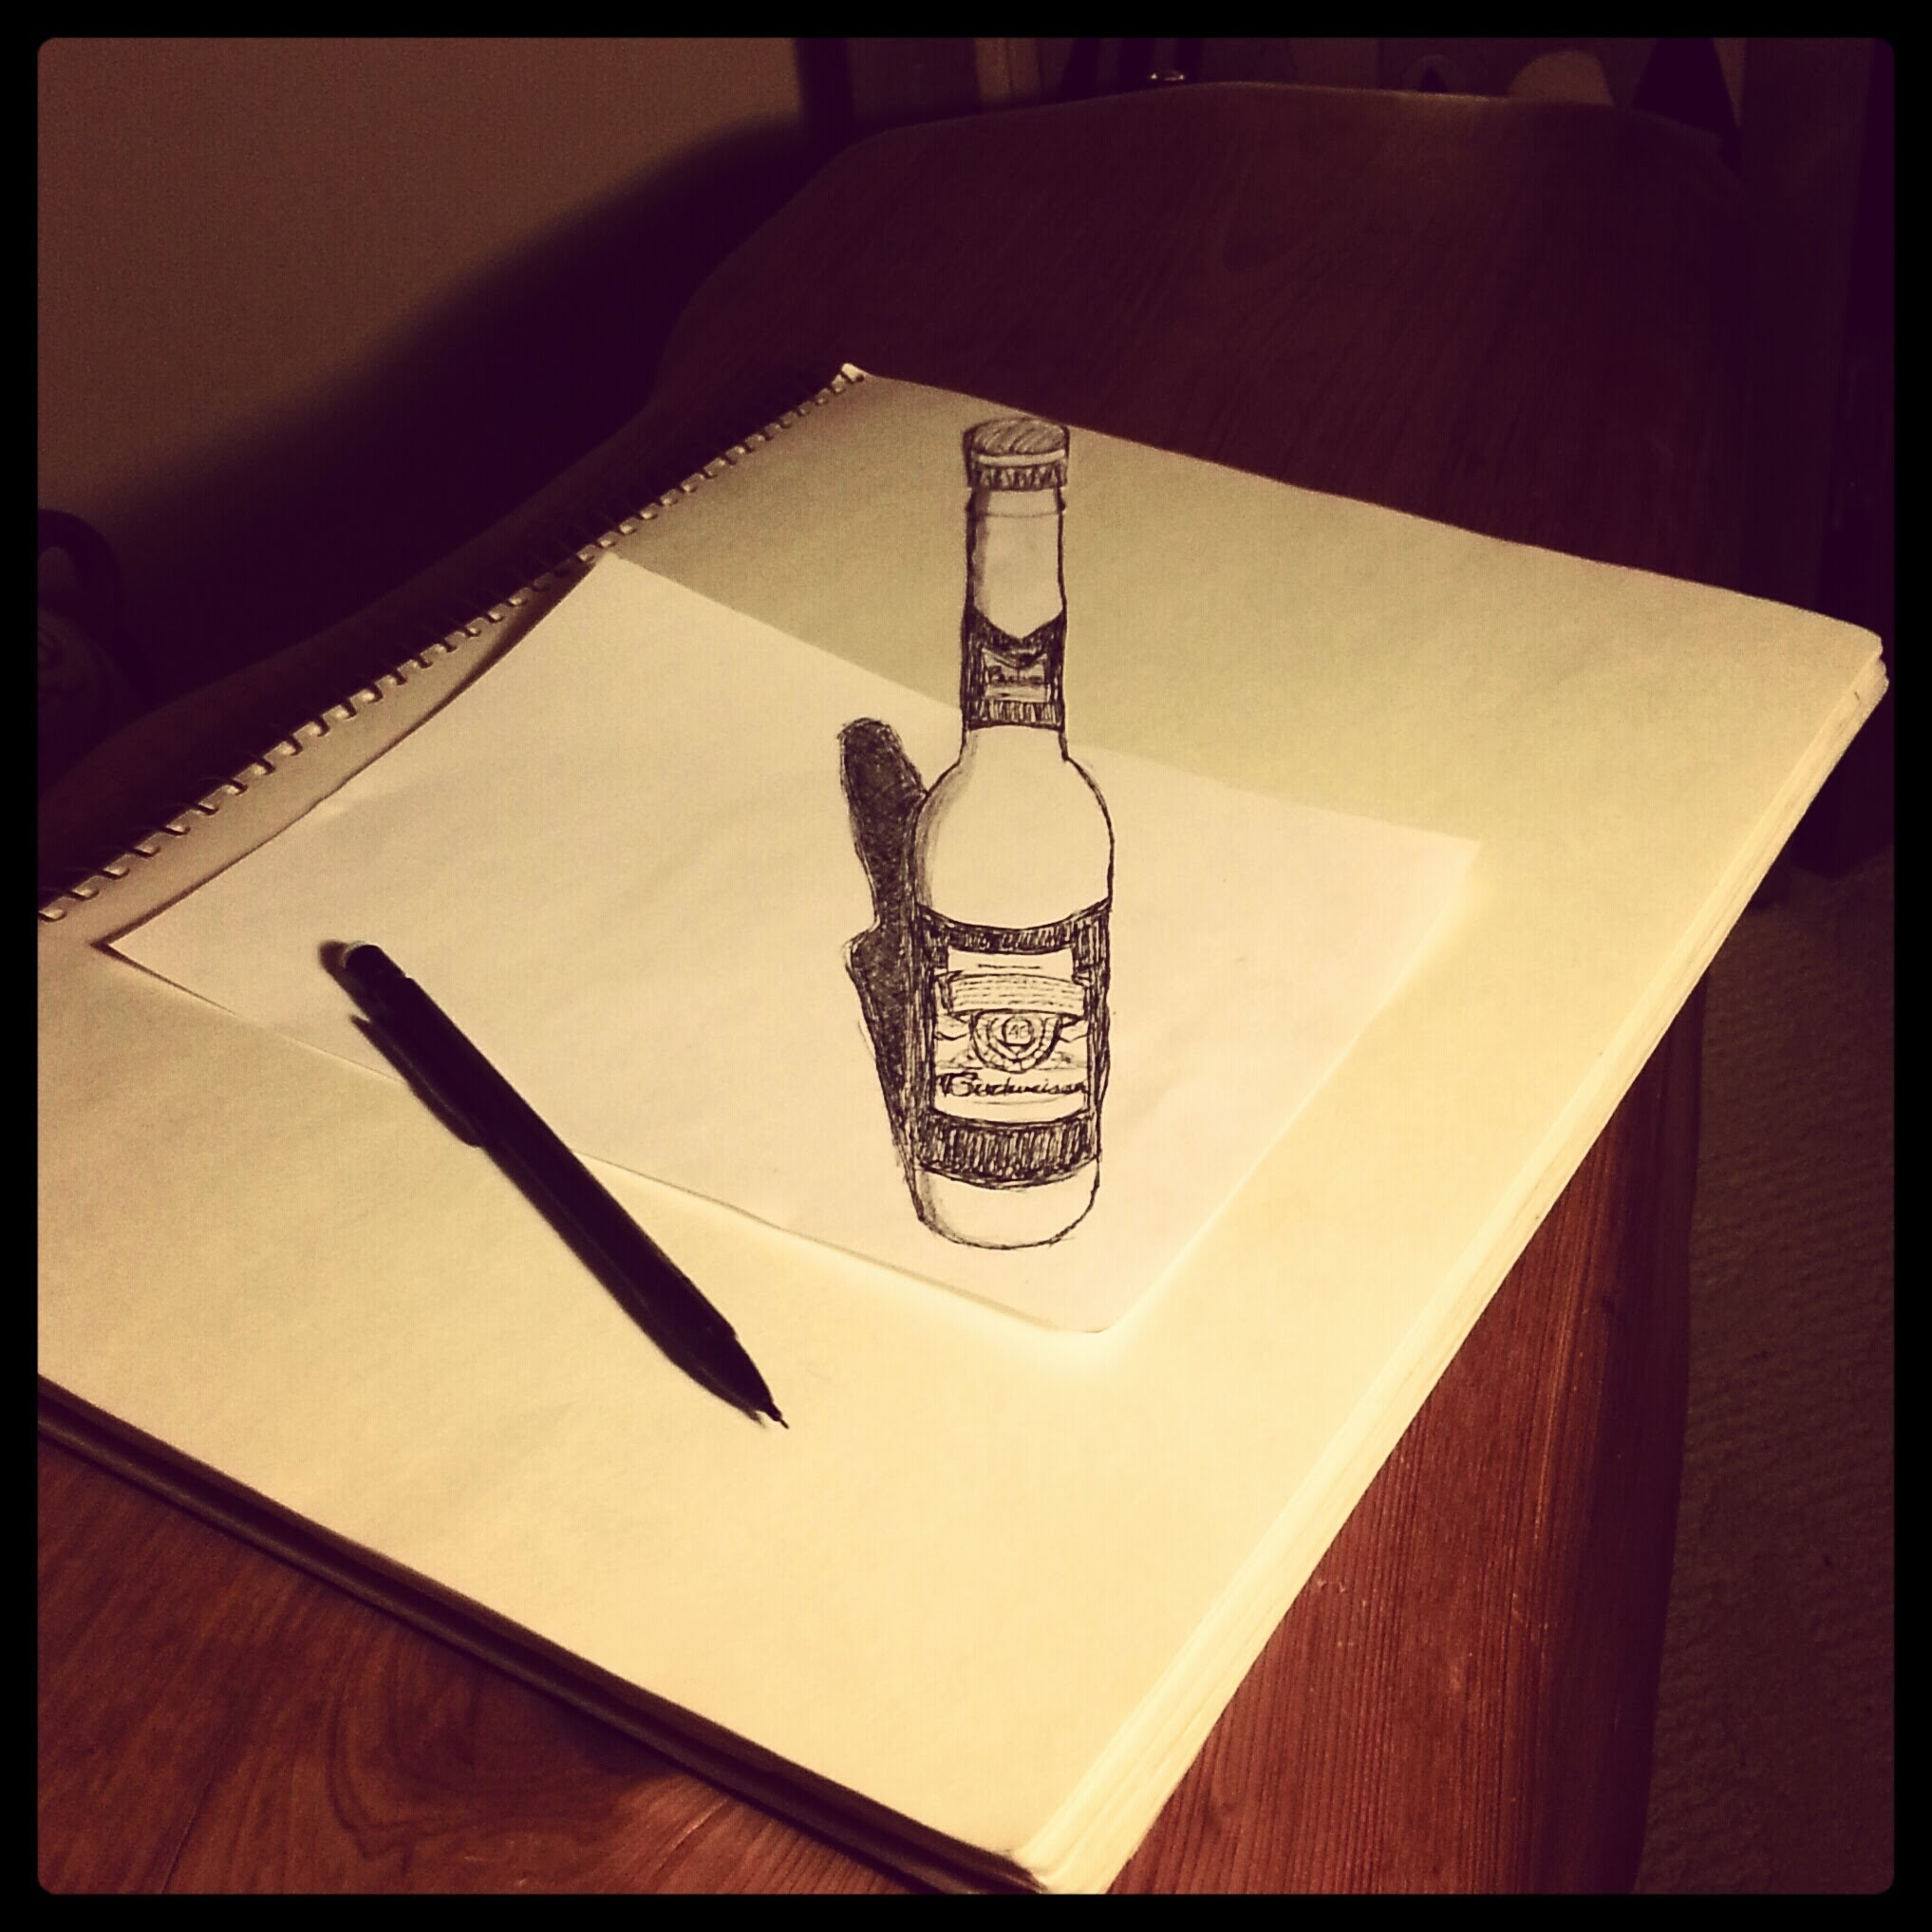 2035x2035 Tutorial How To Make 3D Anamorphic Drawings The Easy Way